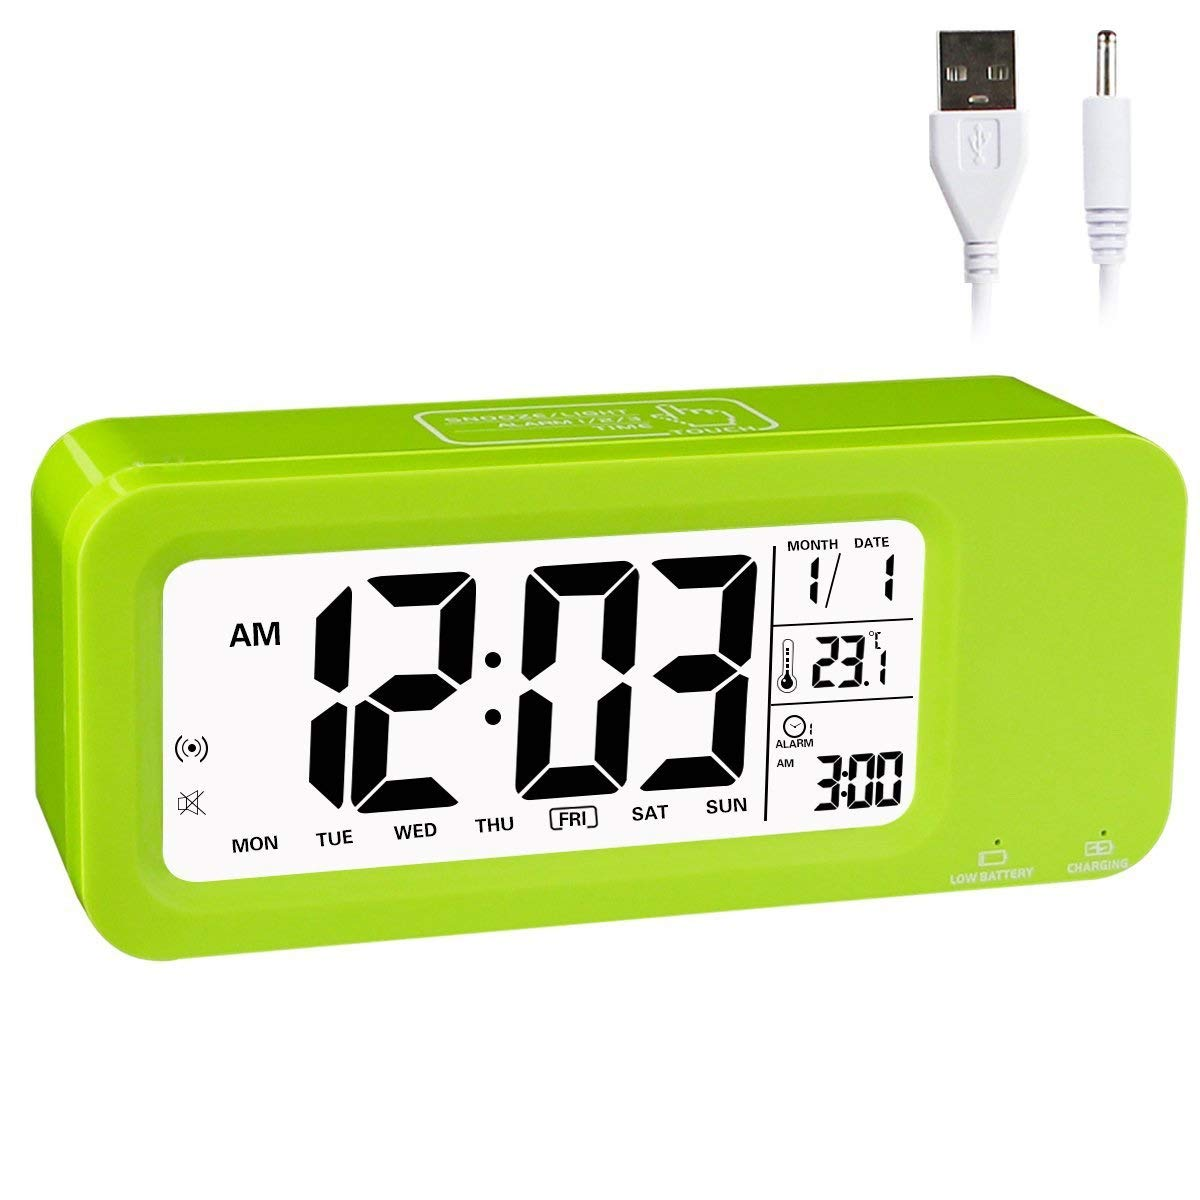 Aitey Alarm Clock for Kids, Talking Digital Clock with Built-in Rechargeble Battery, 3 Alarms, Low Light Sensor Technology for Girls and Boys (Green)